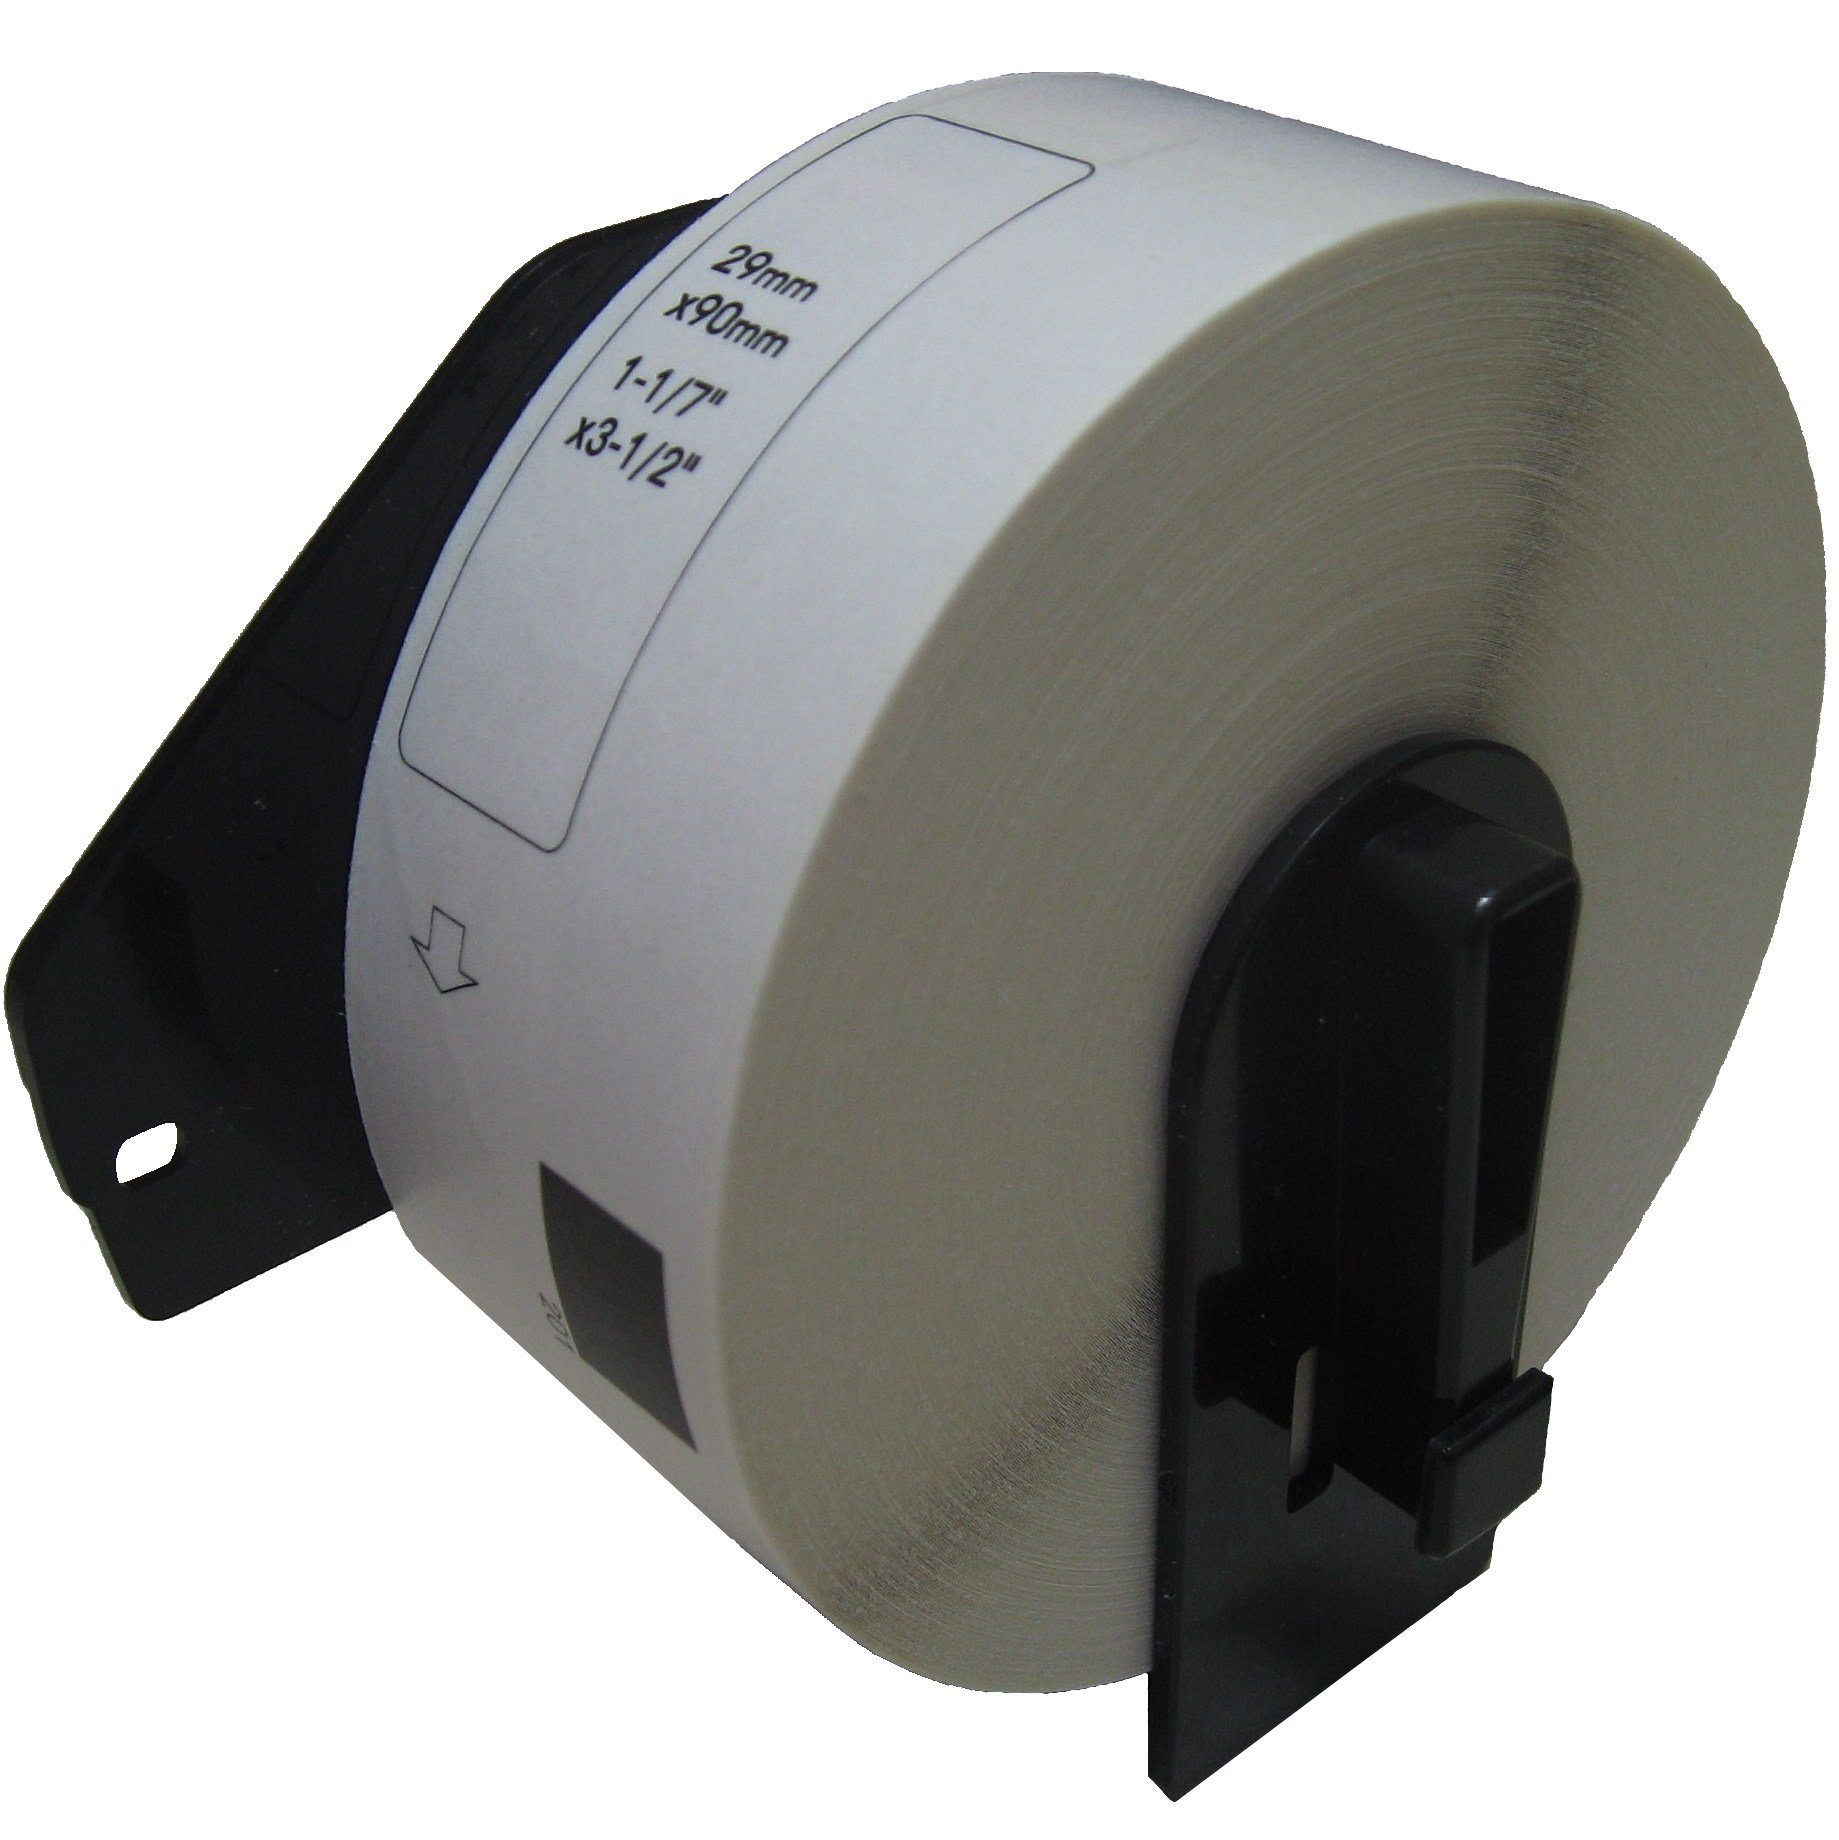 PAR 70 DK-1201. Compatible with Brother DK-1201 1-1/7'' x 3-1/2'' White Labels.(20 Pack)